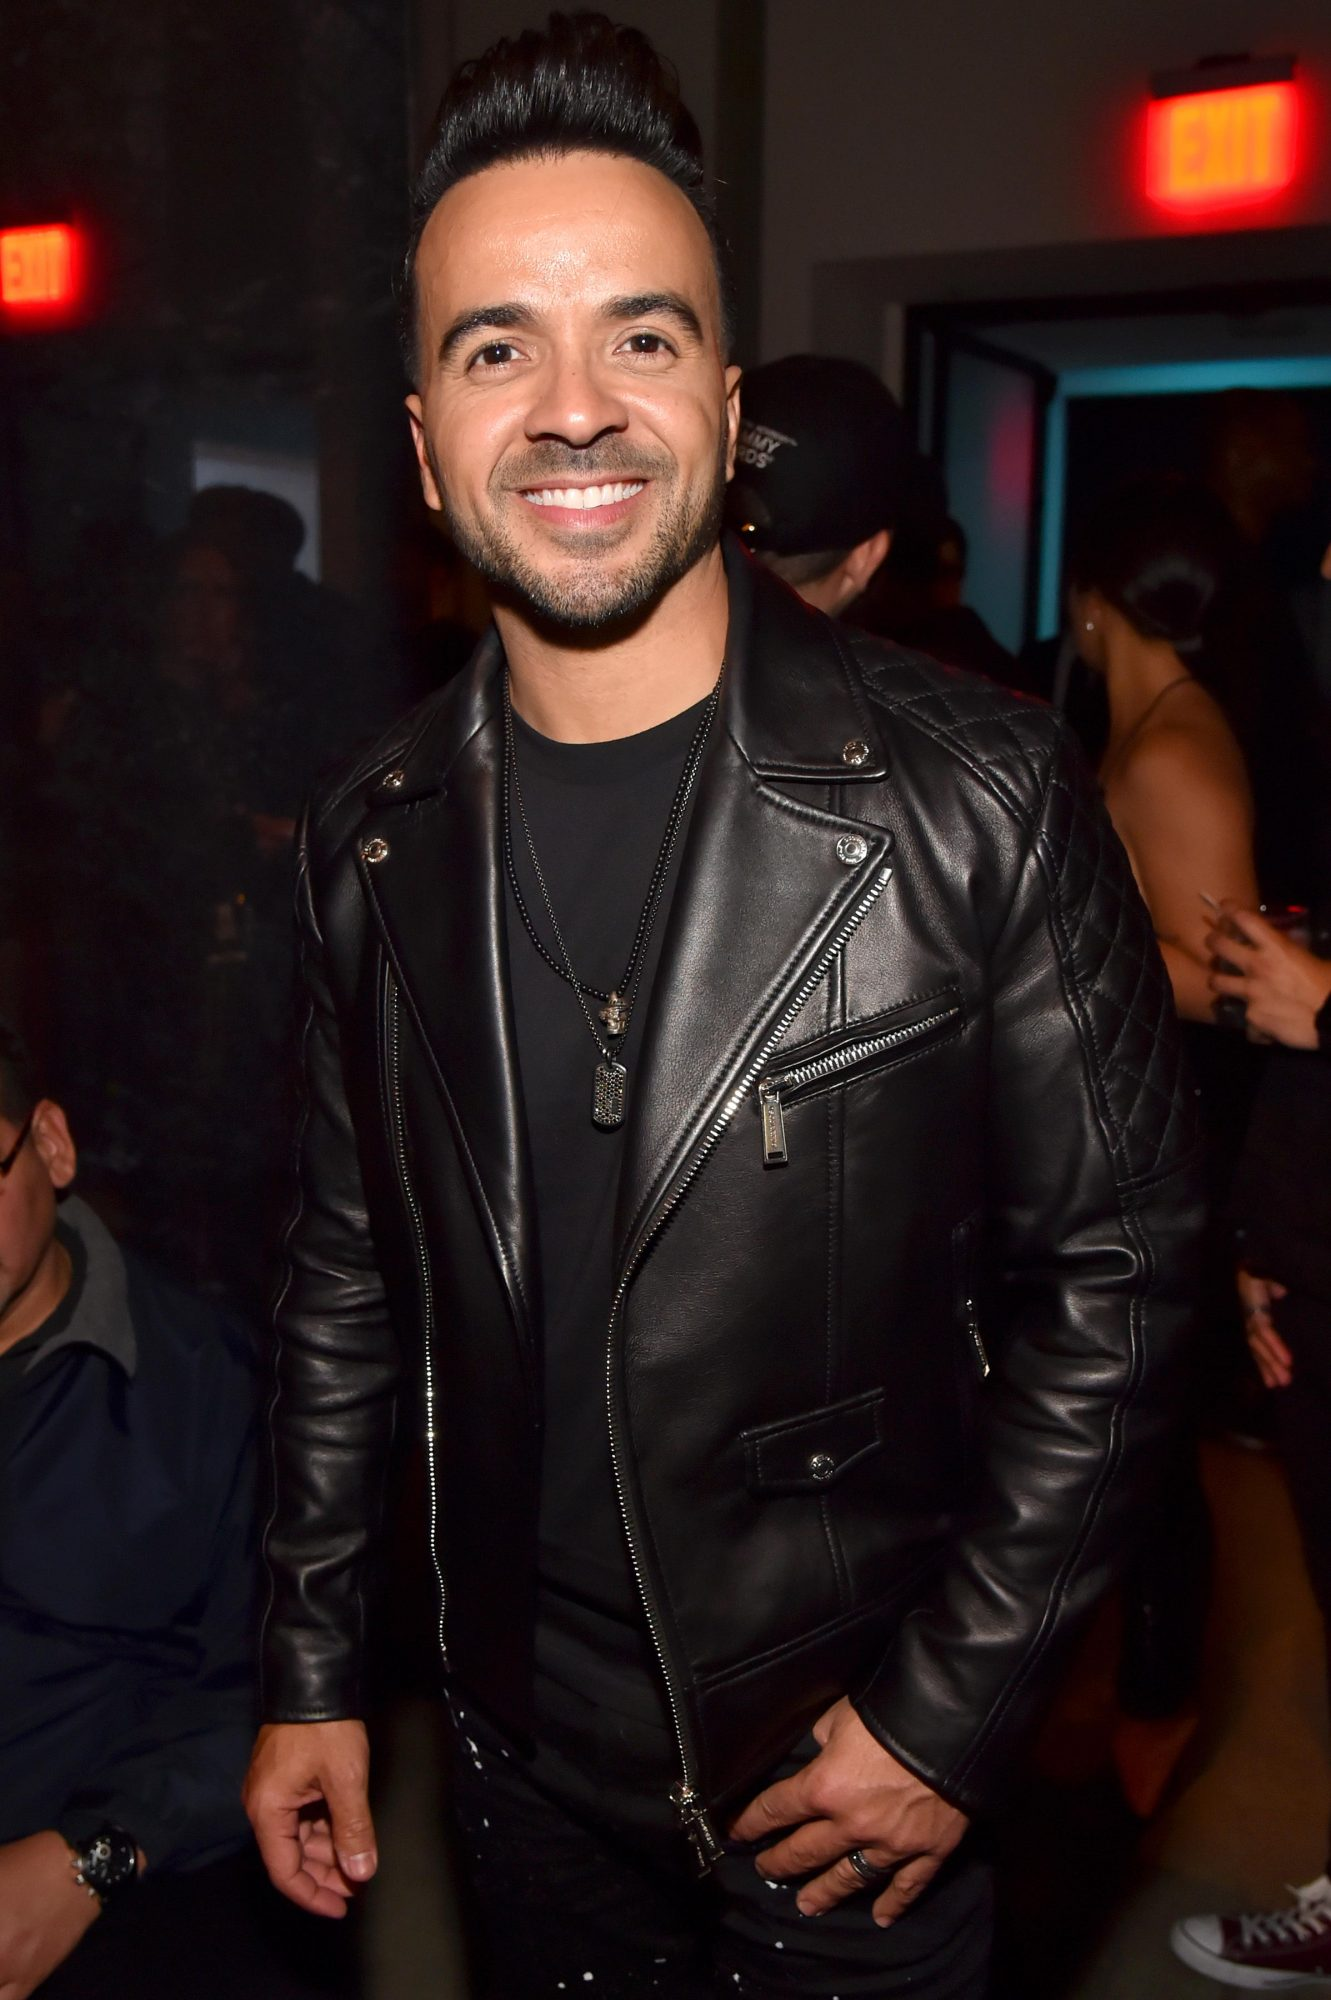 Universal Music Group's 2018 After Party To Celebrate The Grammy Awards Presented By American Airlines And Citi On January 28, 2018 In New York City - Inside